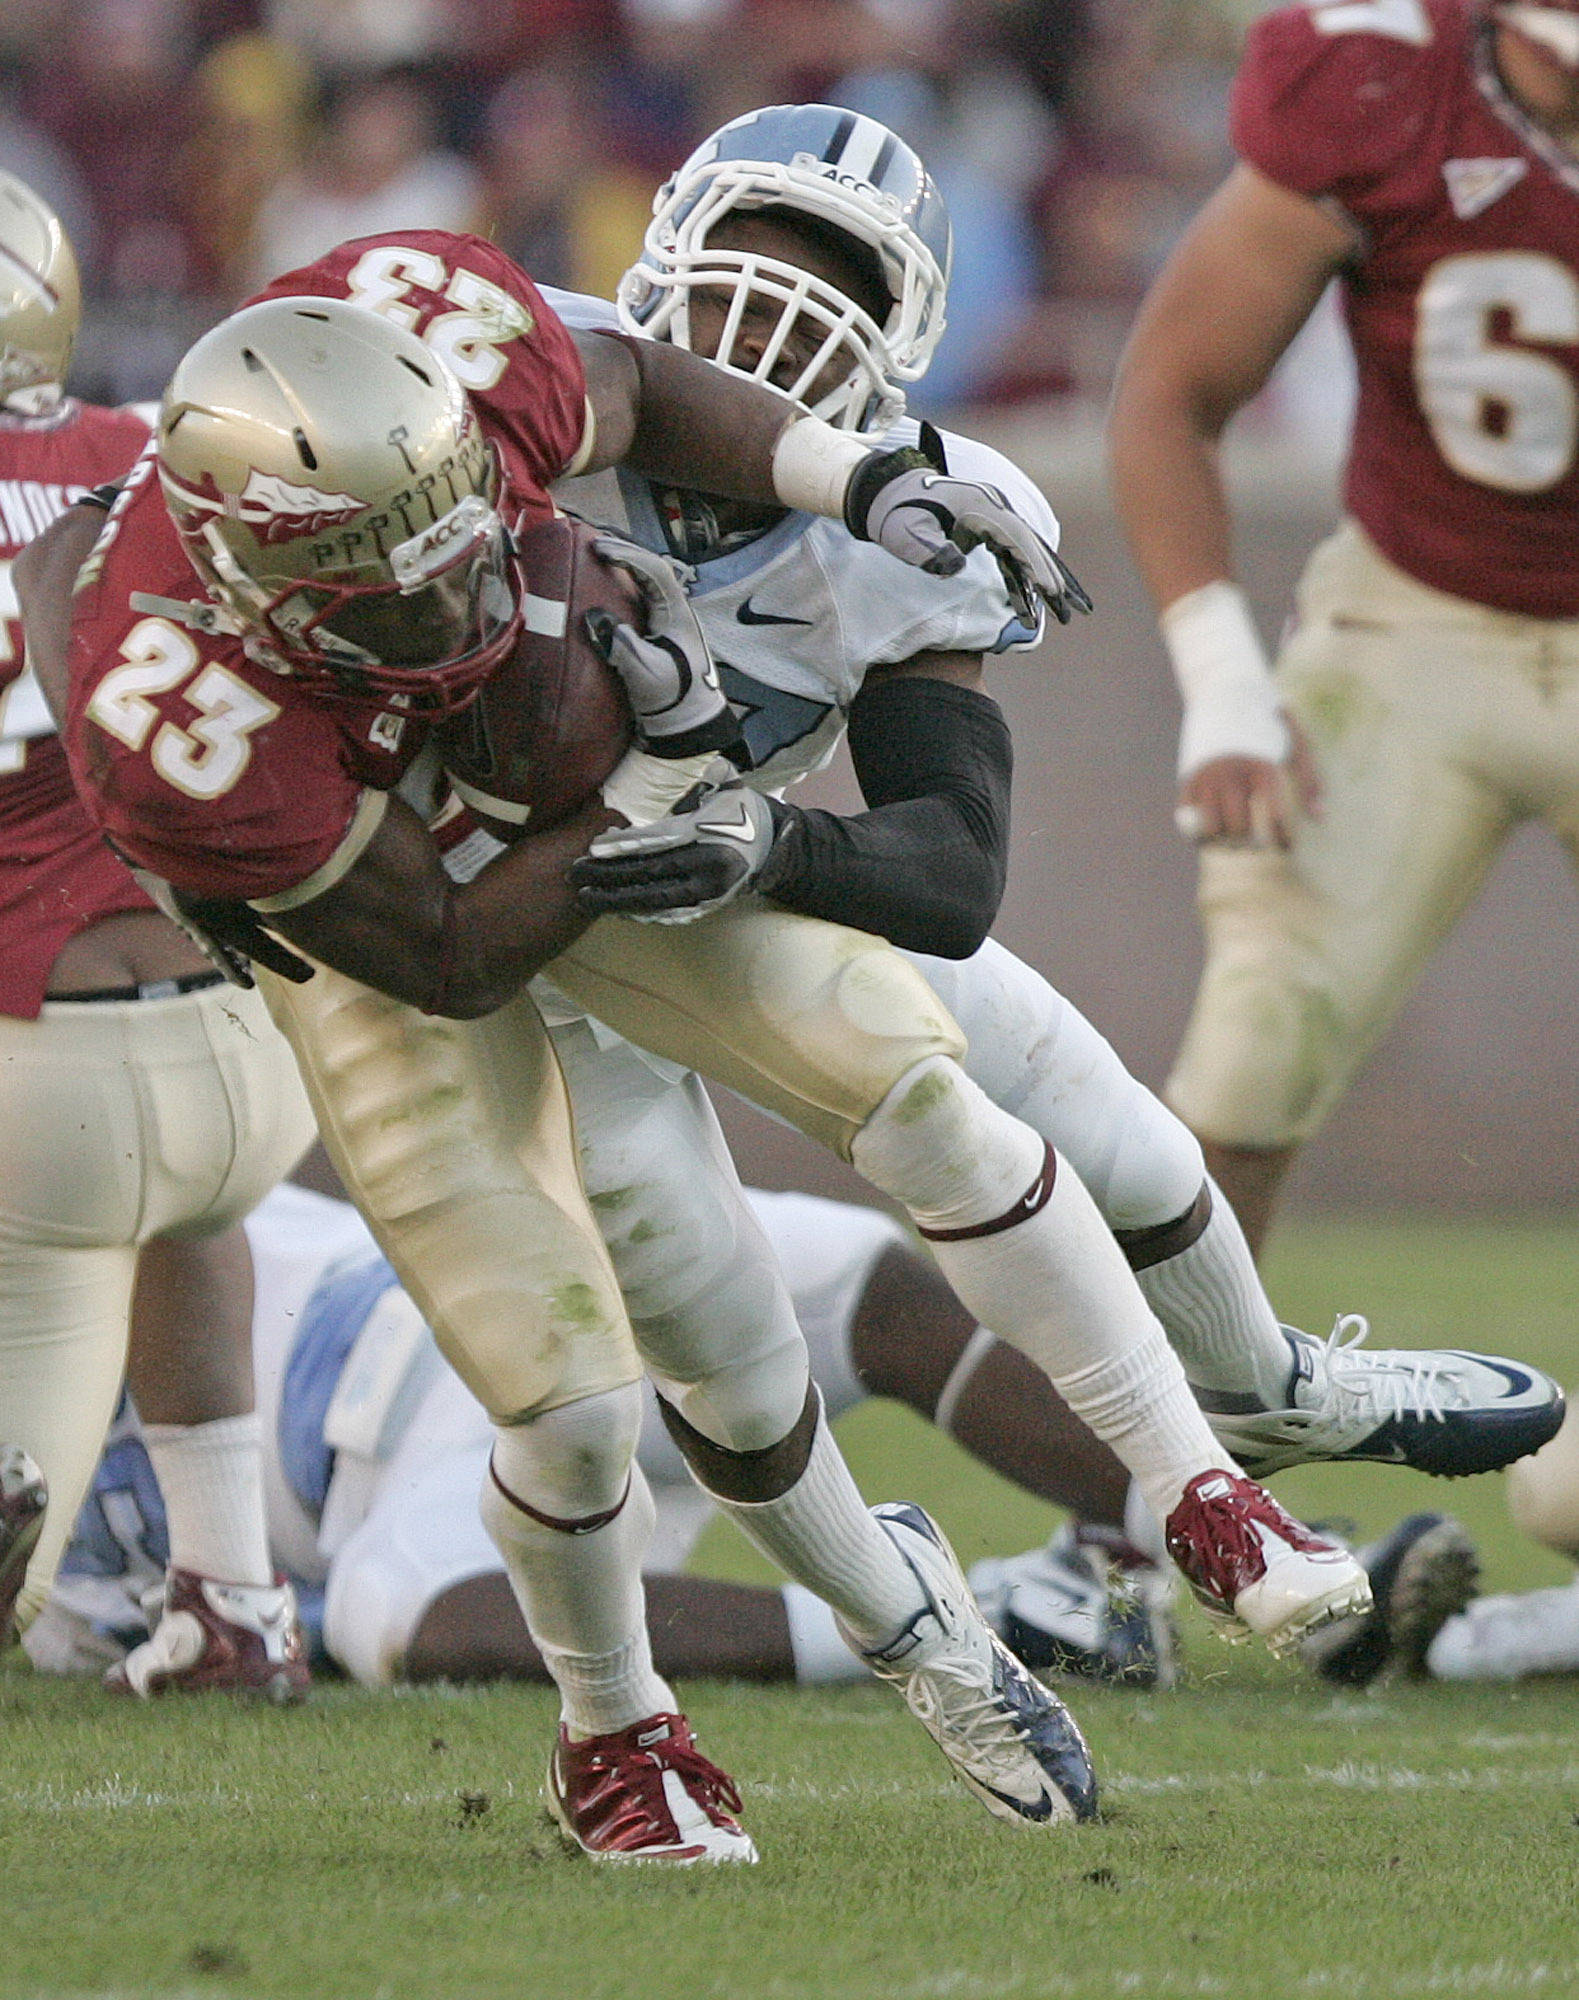 Florida State's Chris Thompson is tackled by North Carolina's Deunta Williams in the third quarter on Saturday. (AP Photo/Steve Cannon)